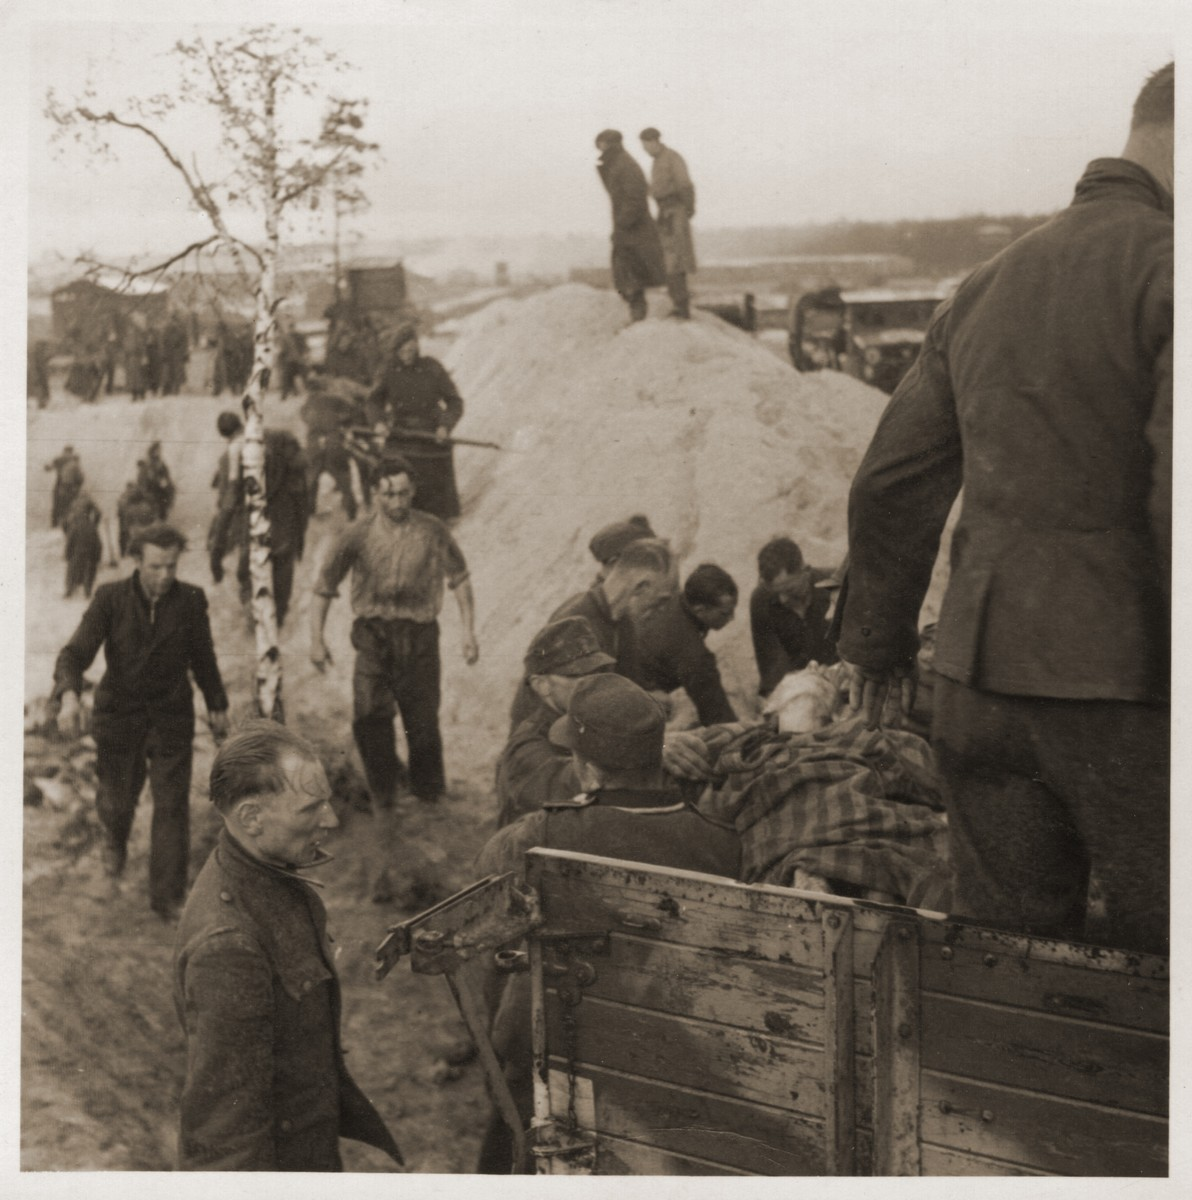 Former SS guards prepare to bury corpses for burial in a mass grave.